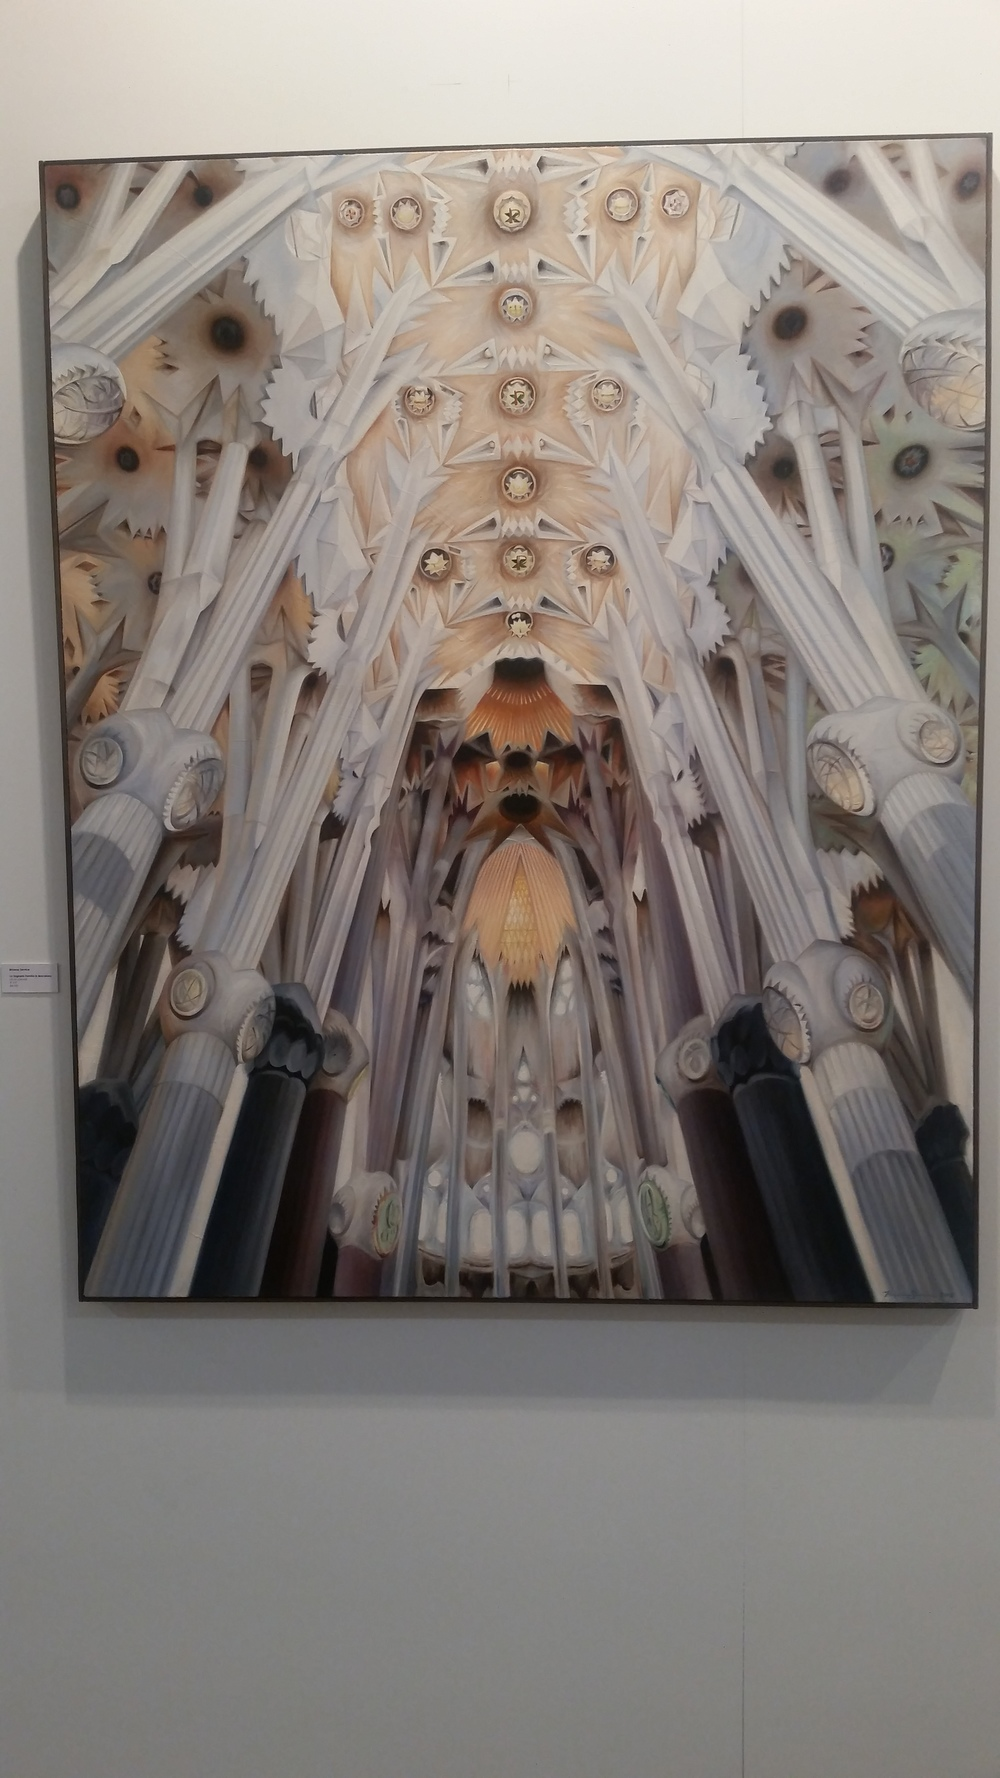 La Sagrada Familia in Barcelona. Oil on canvas by Brianne Service